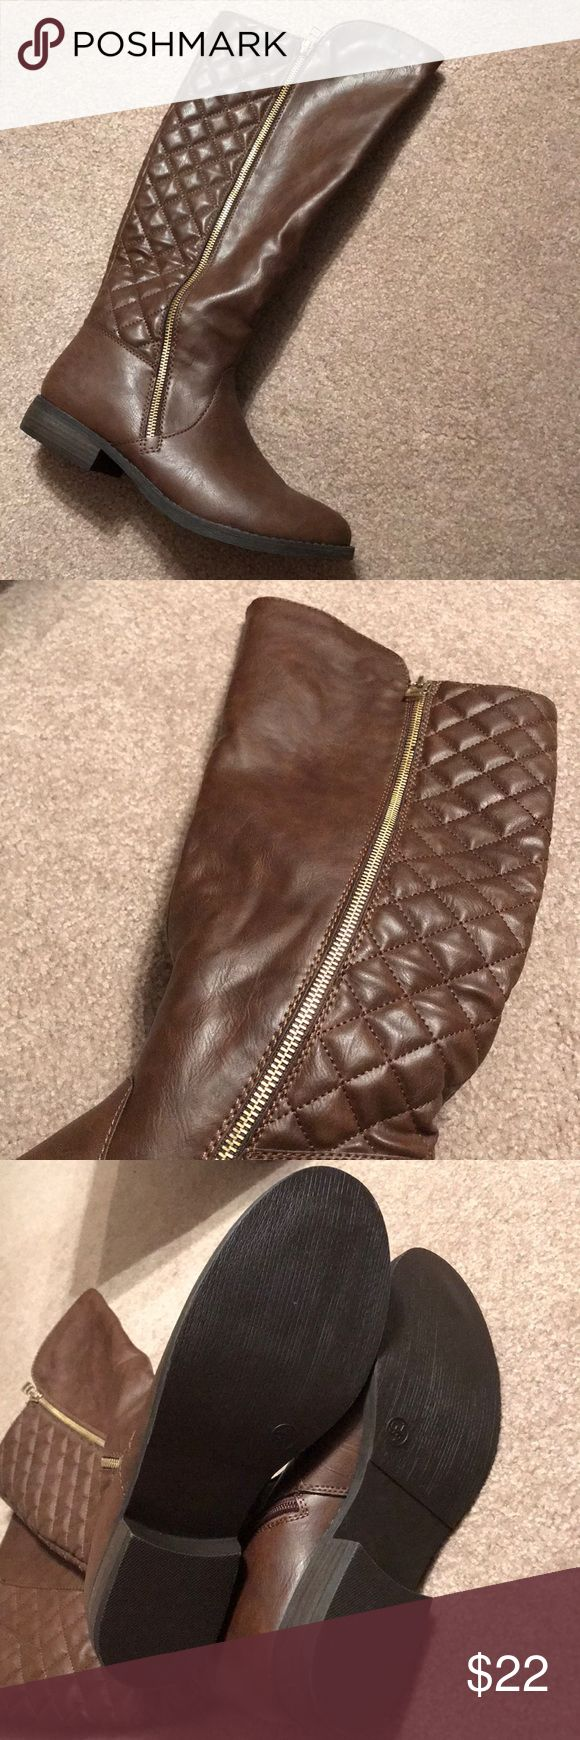 Target boots Brown target boots with gold zipper. Worn maybe once. Merona Shoes Heeled Boots